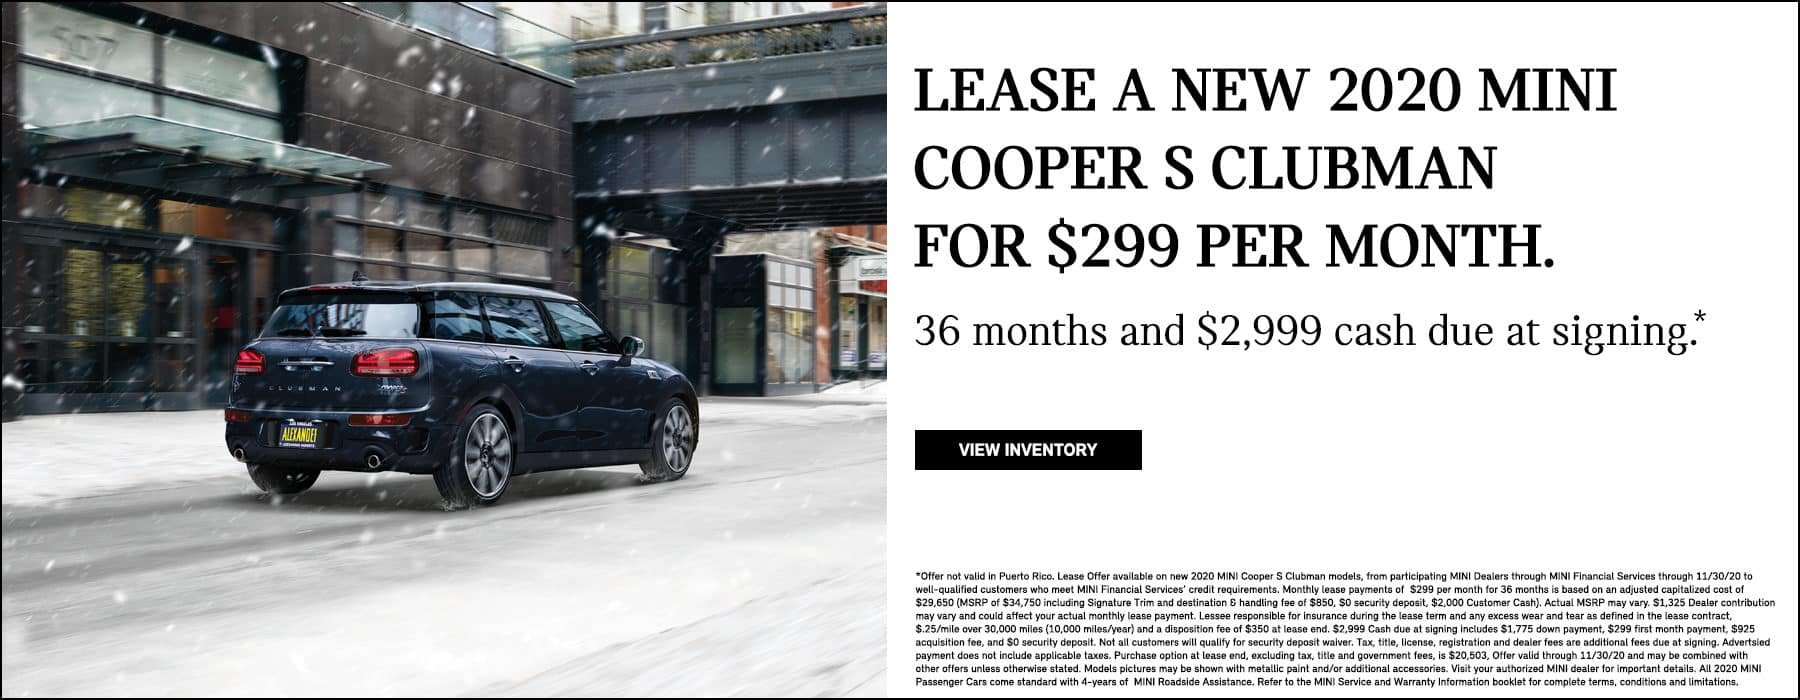 MINI Cooper S Clubman $299 lease offer low payment Nick Alexander Number 1 # dealer dealership center in Los Angeles SoCal California West Coast